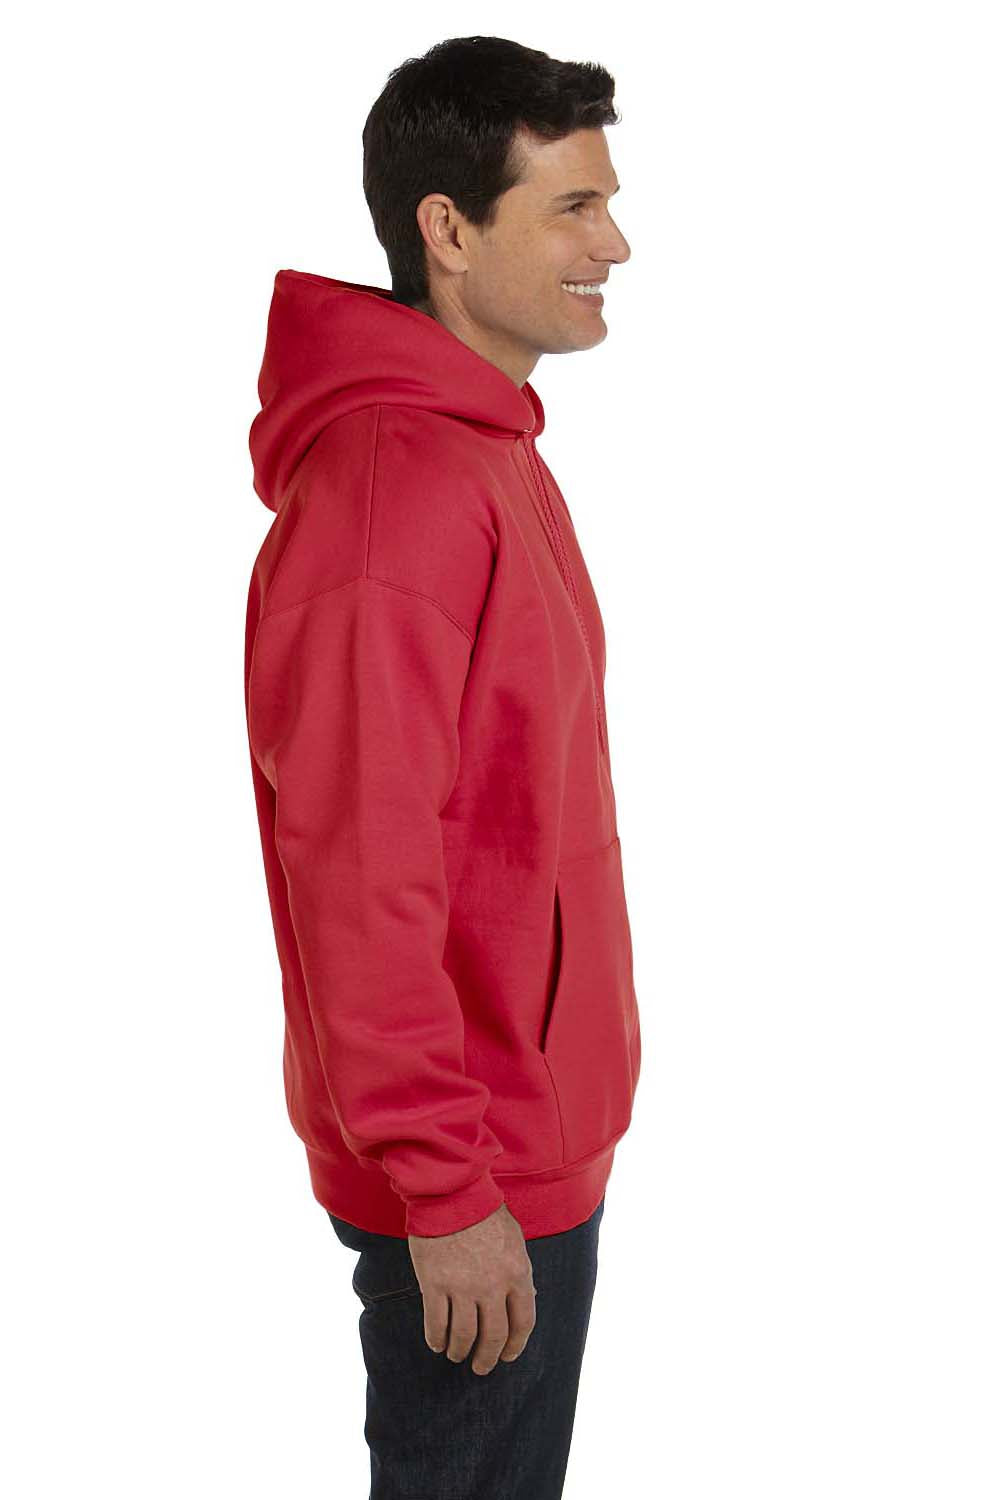 Hanes F170 Mens Ultimate Cotton PrintPro XP Hooded Sweatshirt Hoodie Red Side